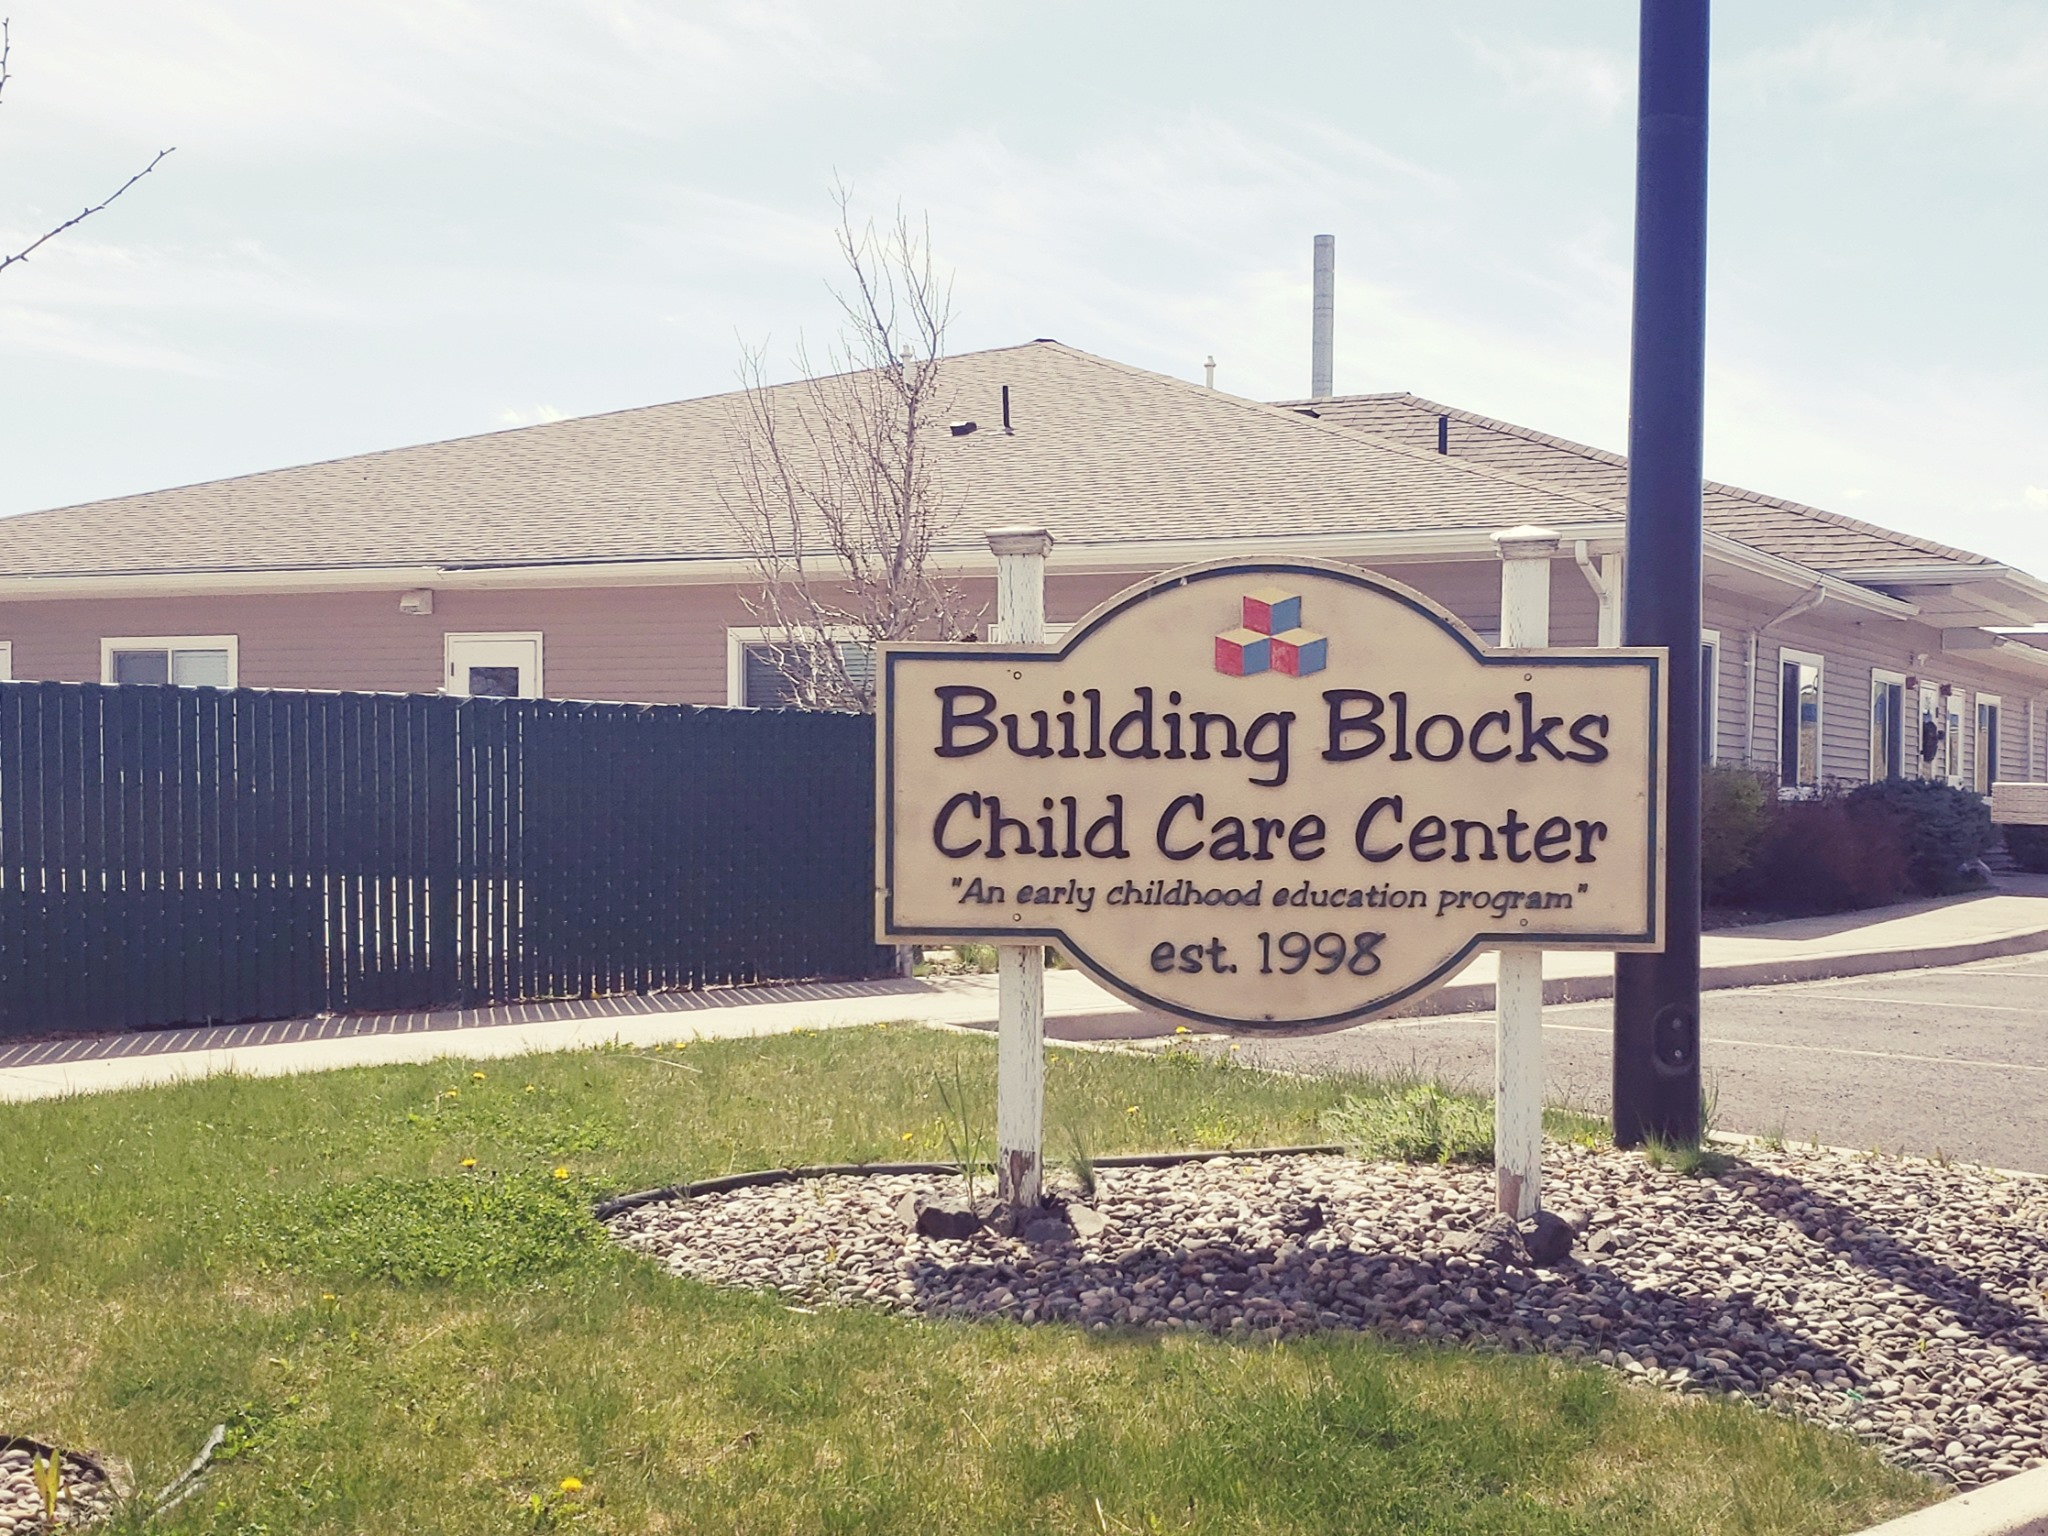 Building Blocks Childcare center featured in Today's webinar at Pullman Marketing